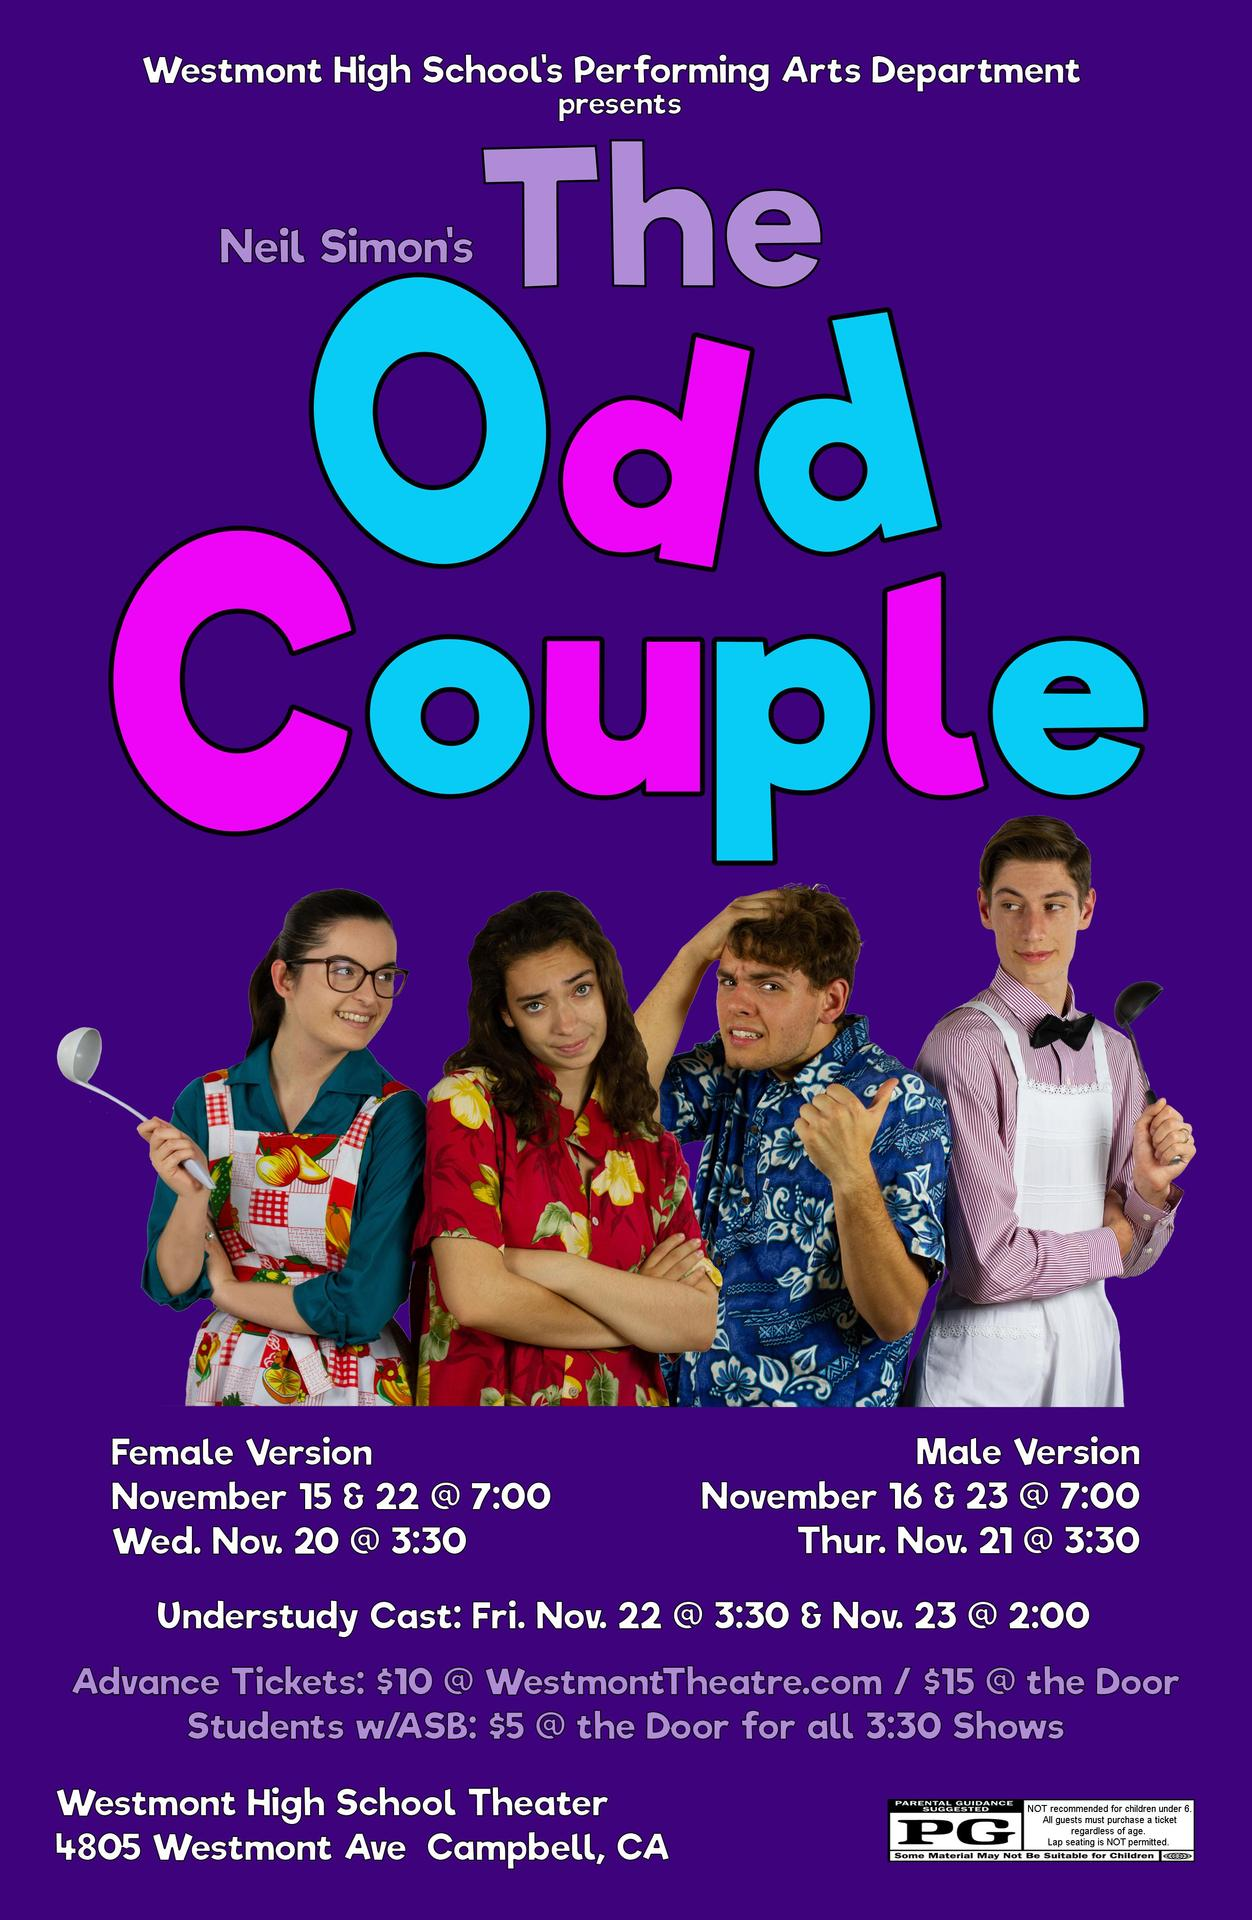 ODD COUPLE poster with photo of both sets of leads